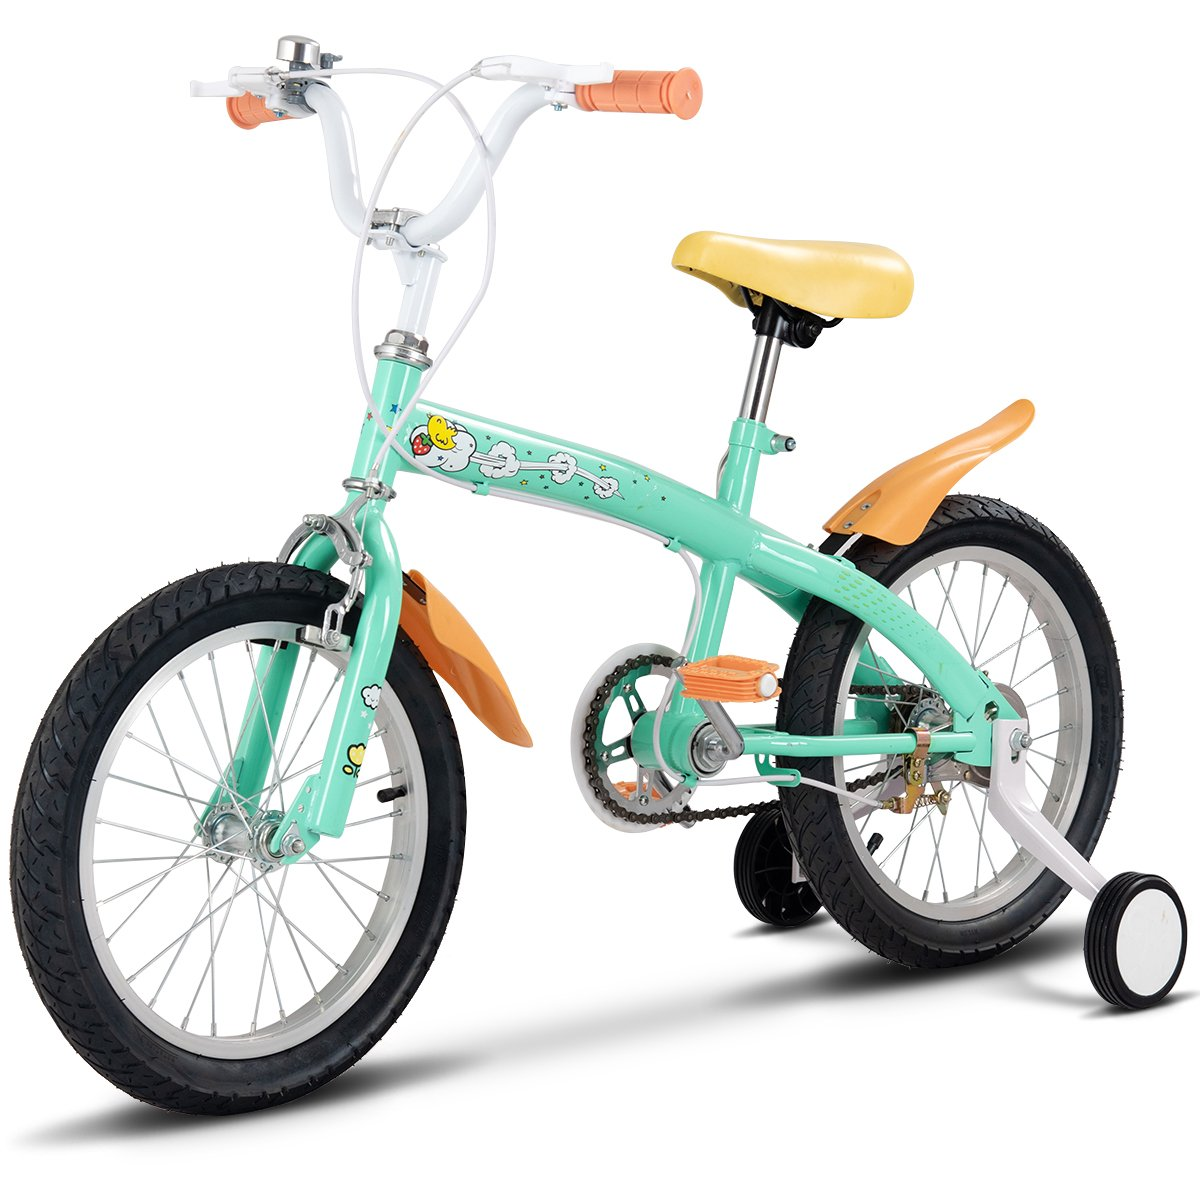 Costzon Kids Bike, Bicycle with Training Wheels & Hand Brake for Boys and Girls (Green, 16-Inch)